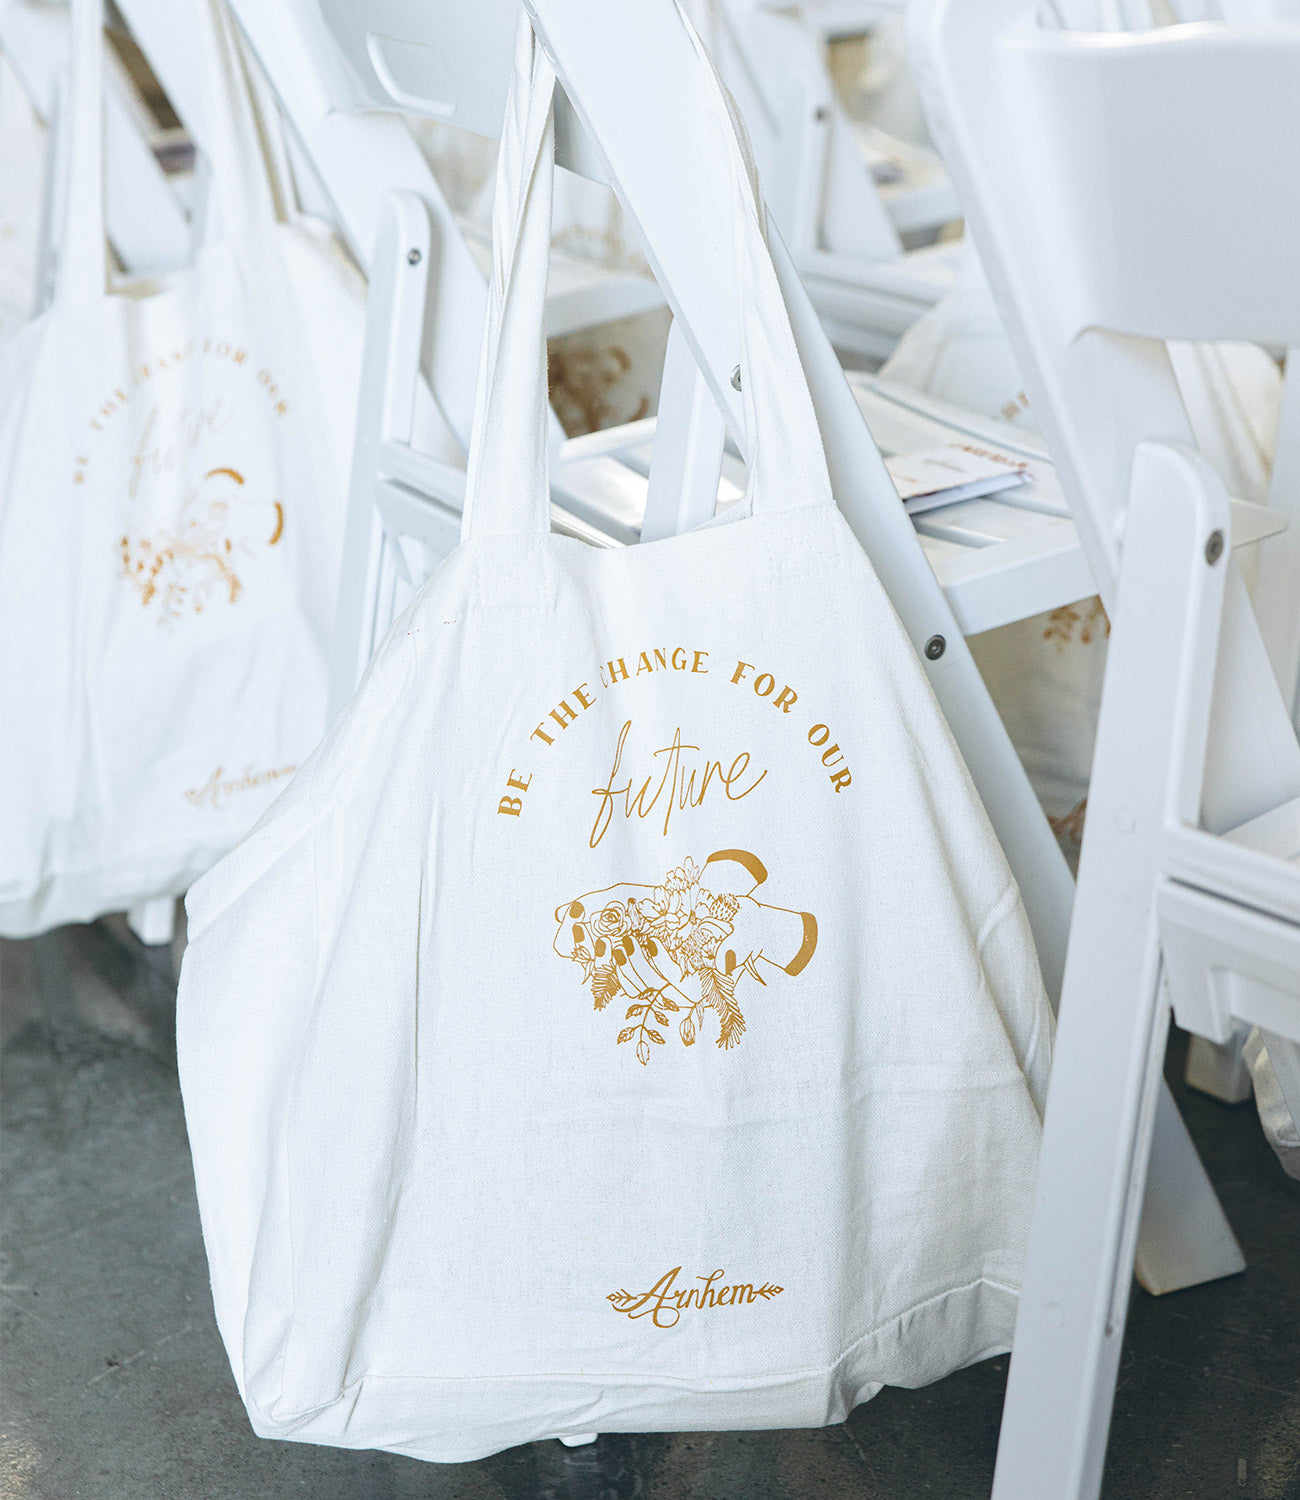 Our Arnhem Gift Bags - purchase this tote online now